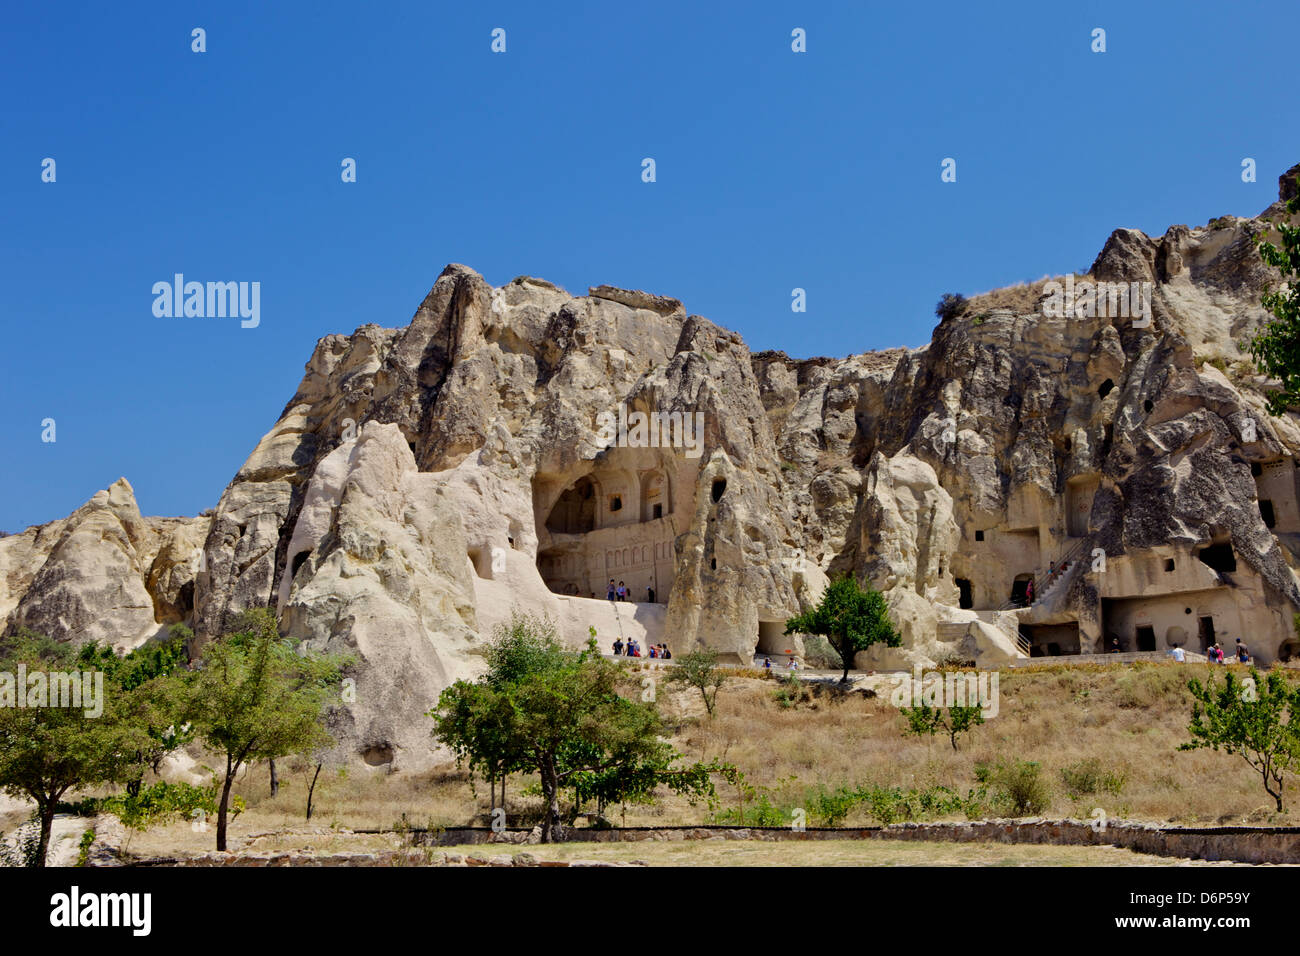 Goreme open air museum, Cappadocia, Anatolia, Turkey, Asia Minor, Eurasia - Stock Image